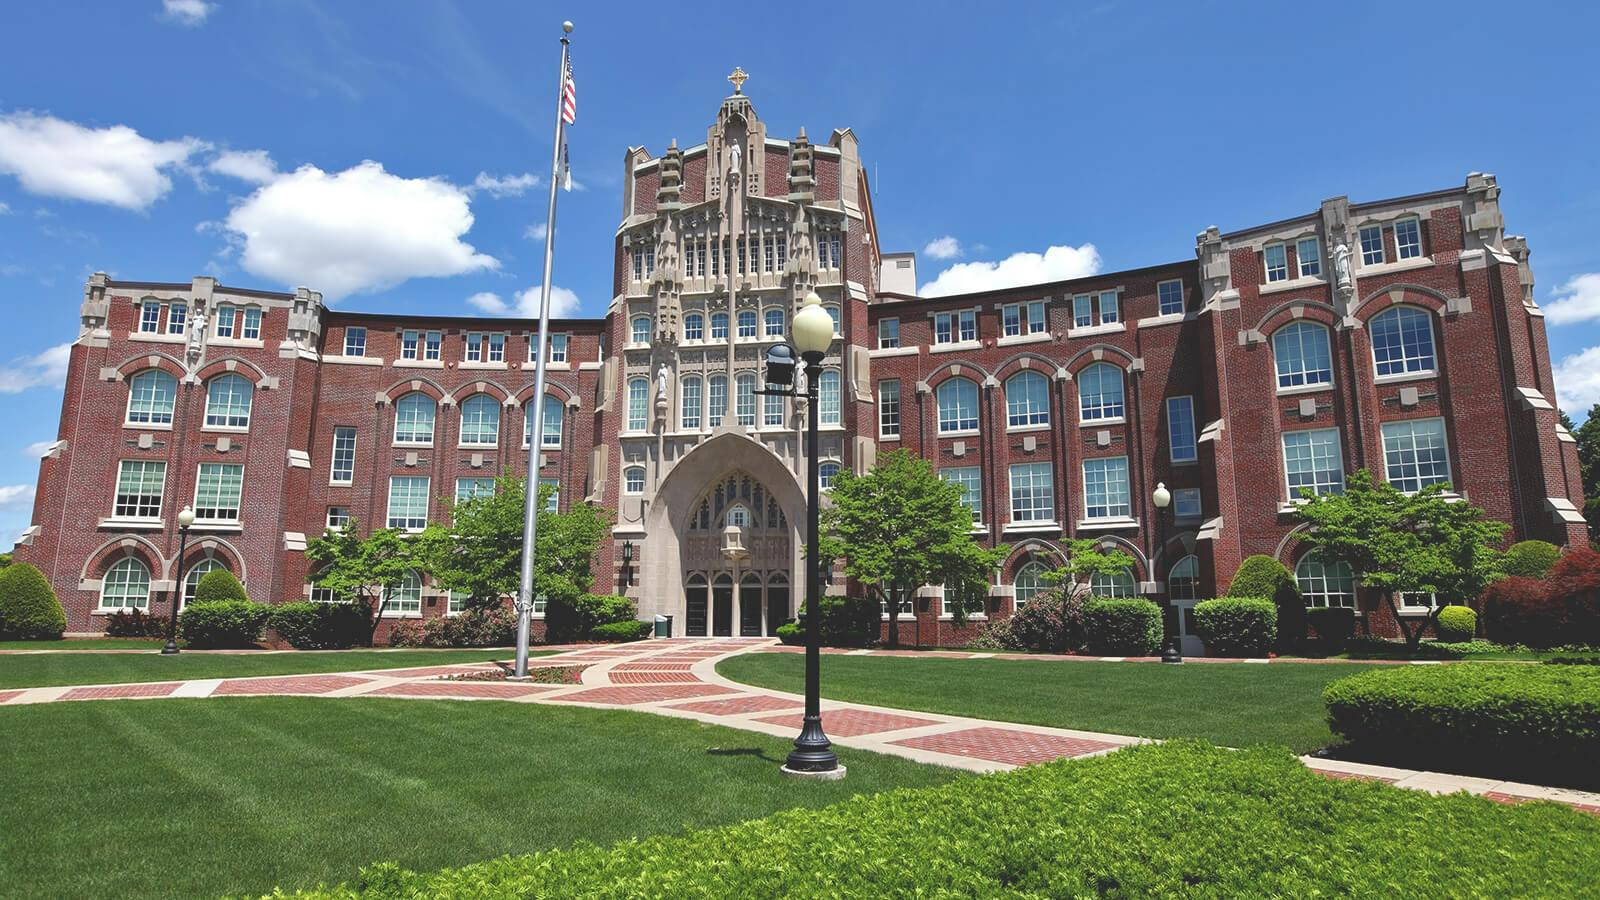 Providence College – three class visits on globalization and social change by CSFilm Director Michael Sheridan